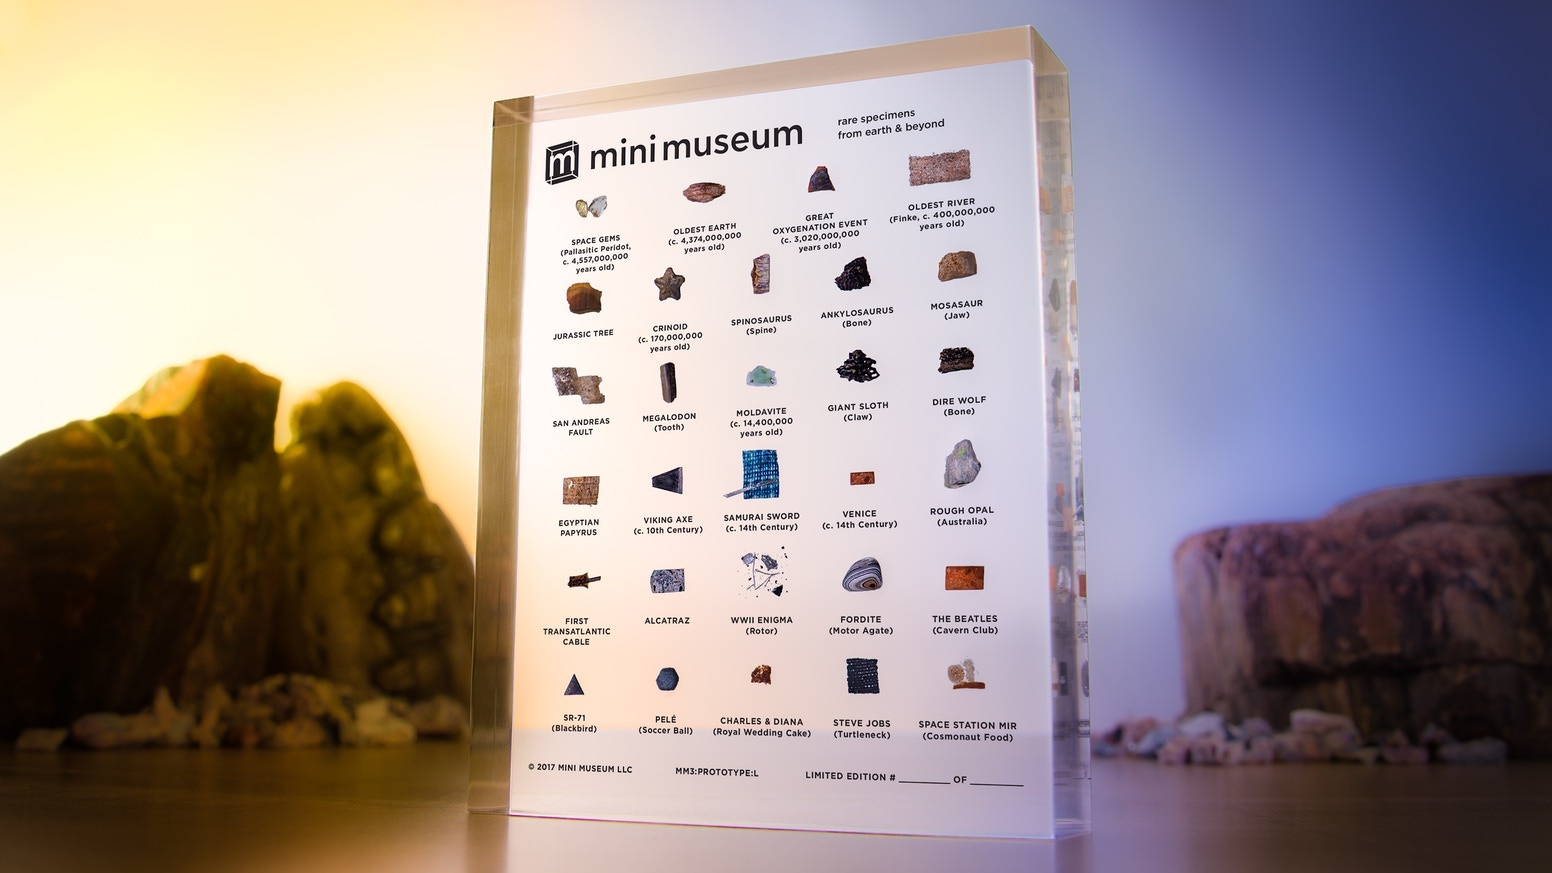 Mini Museum 3 The Third Edition By Hans Fex Kickstarter Wiring Heat Tape To Dimmer Switch Reptile Forums Information All New Billions Of Years Life Science And History In Palm